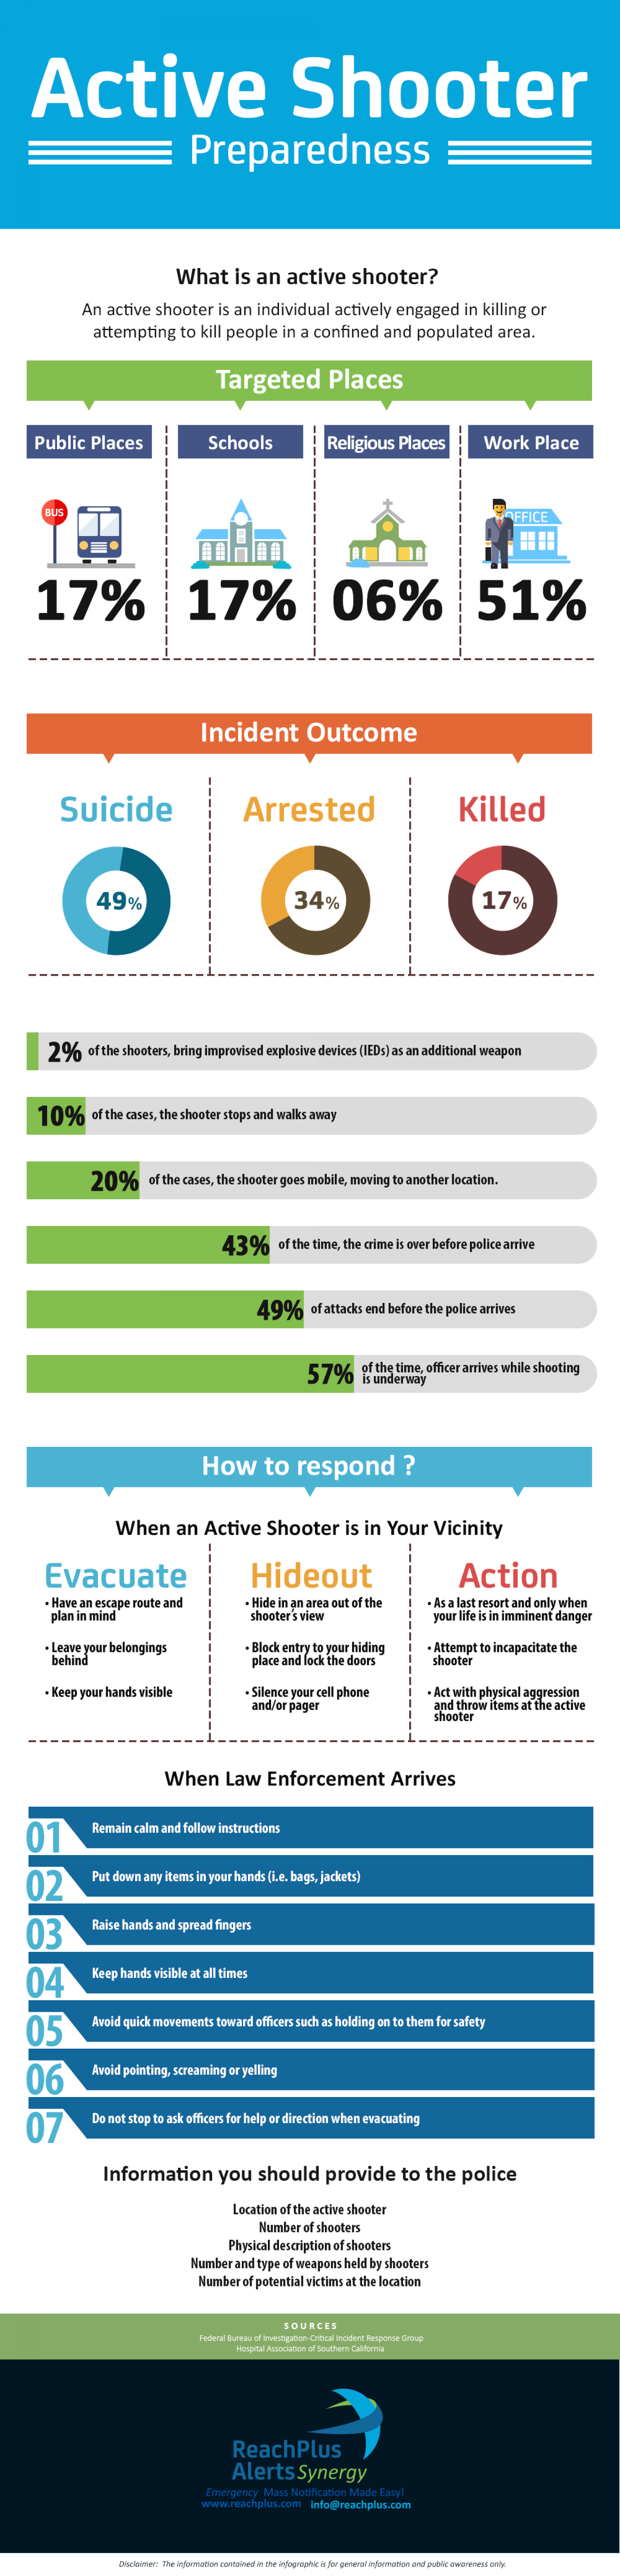 Active Shooter Preparedness Infographic